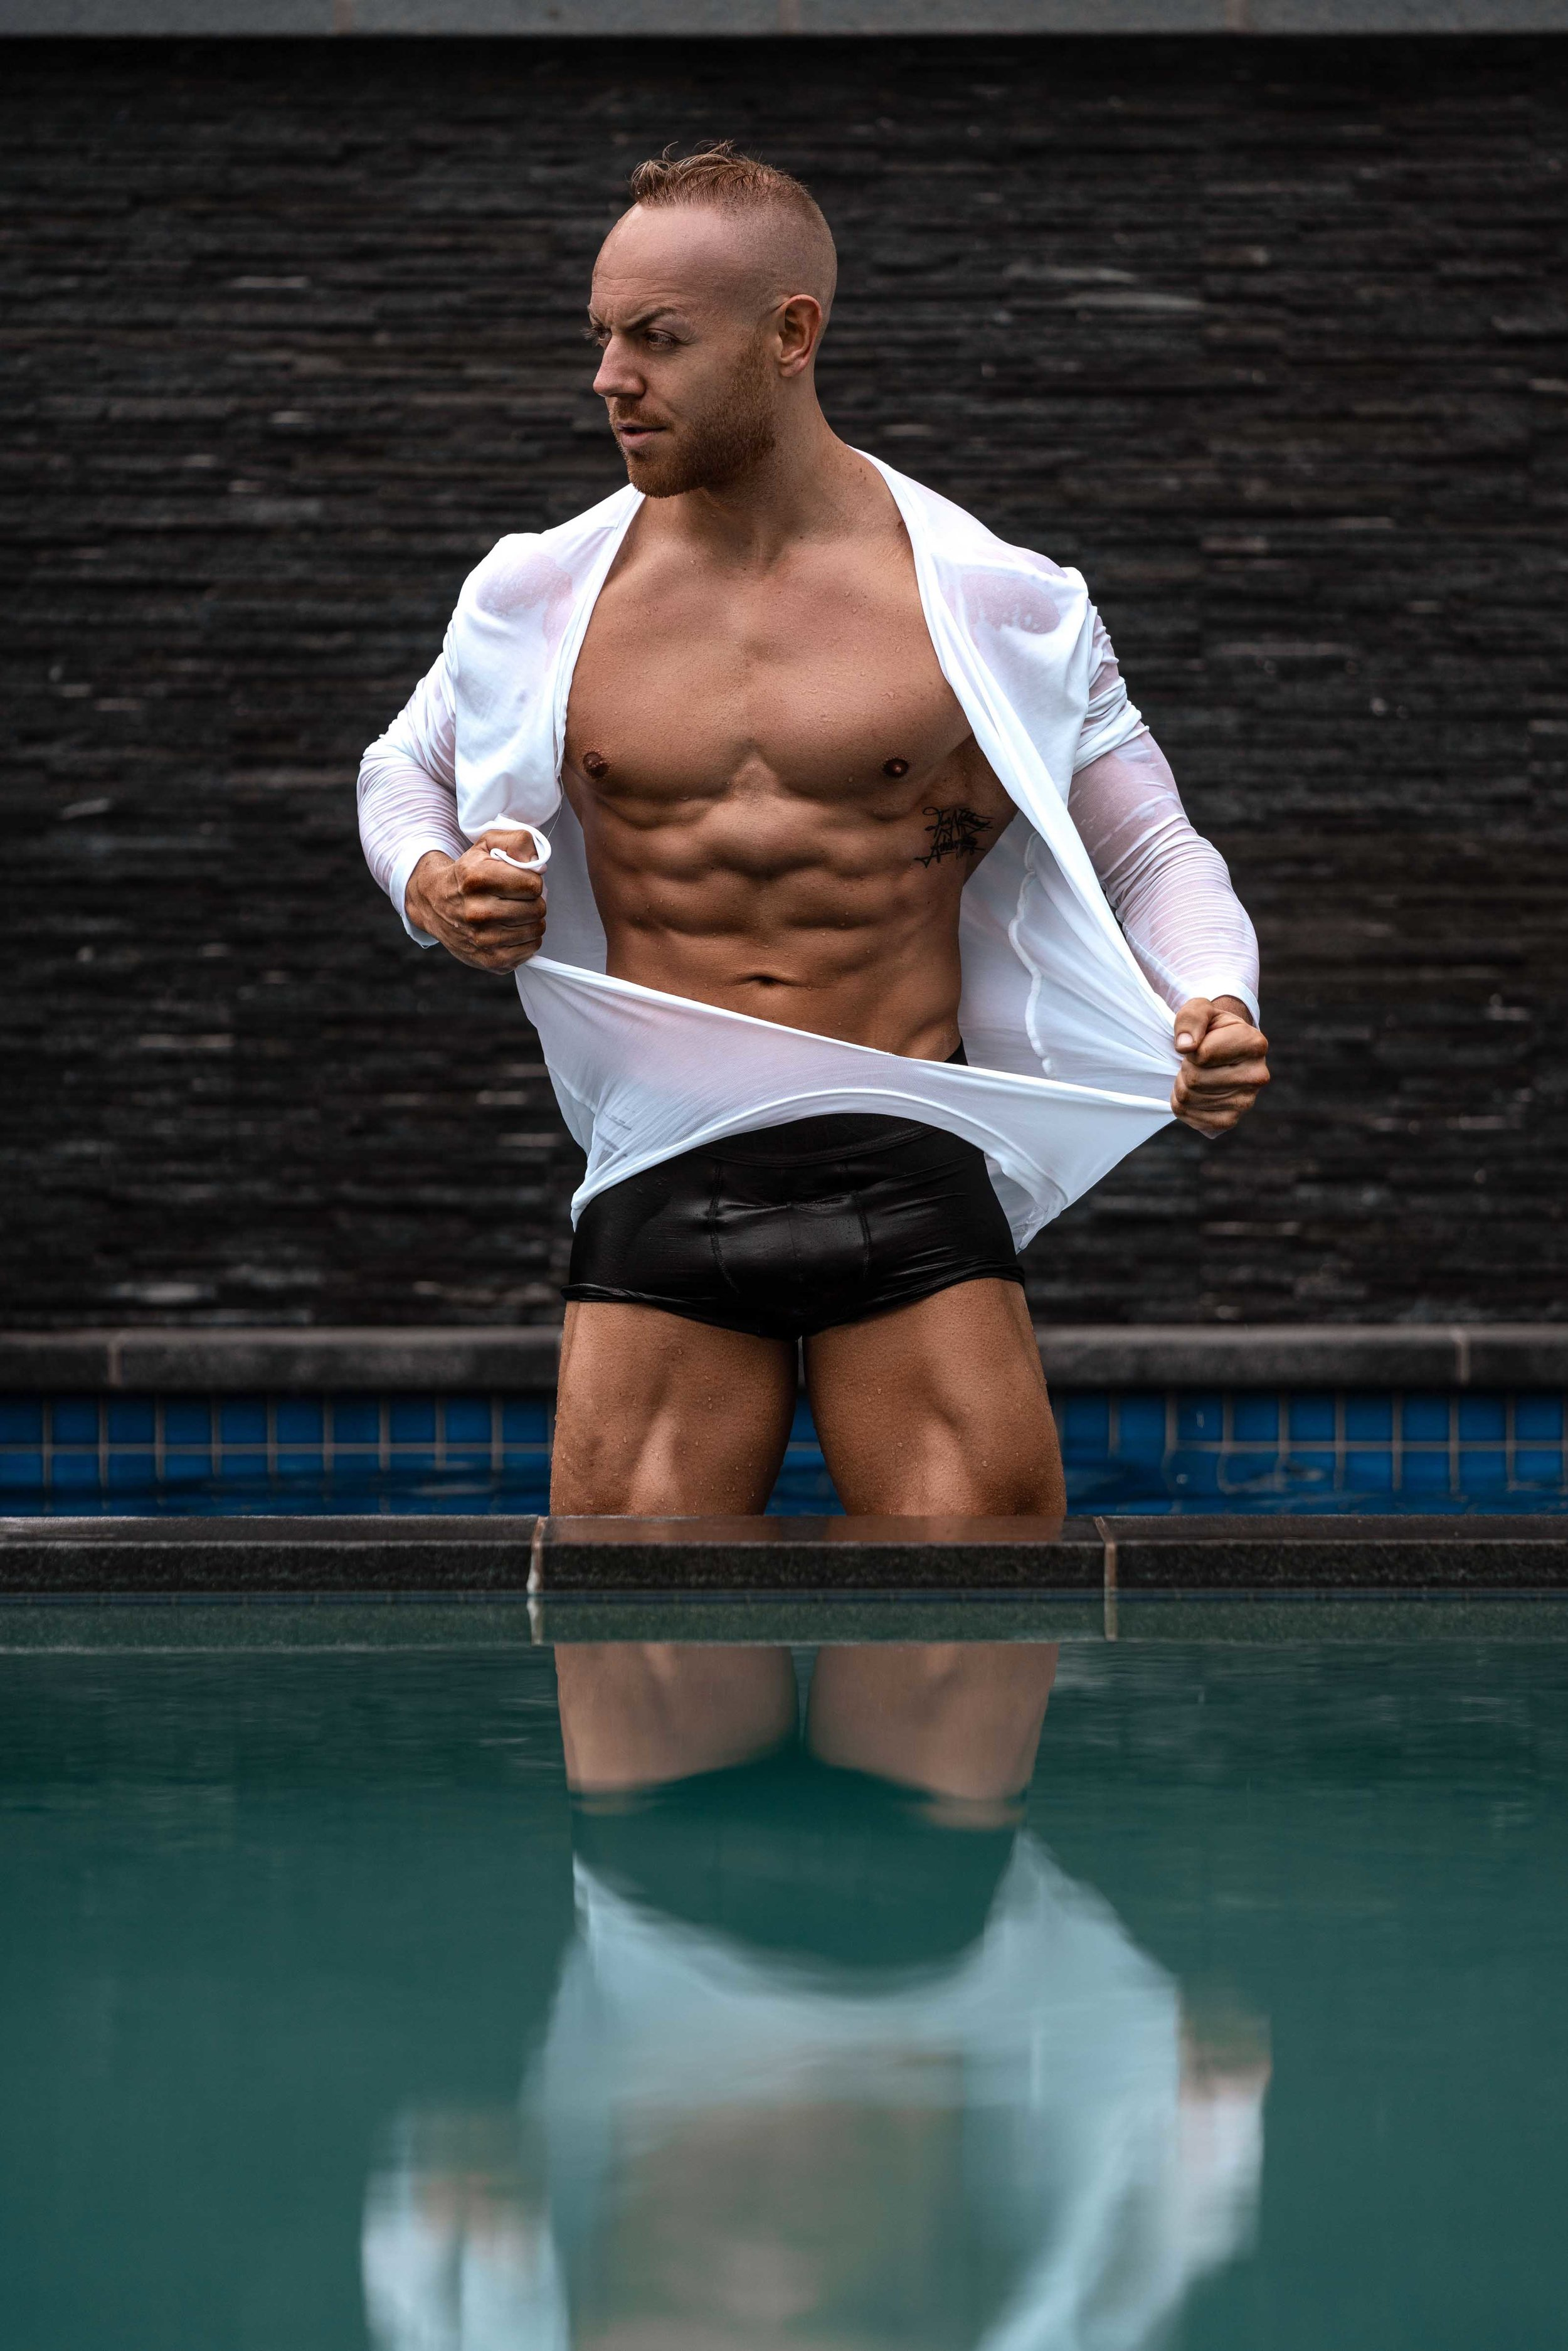 Hire a sexy australian hunk for your hens party